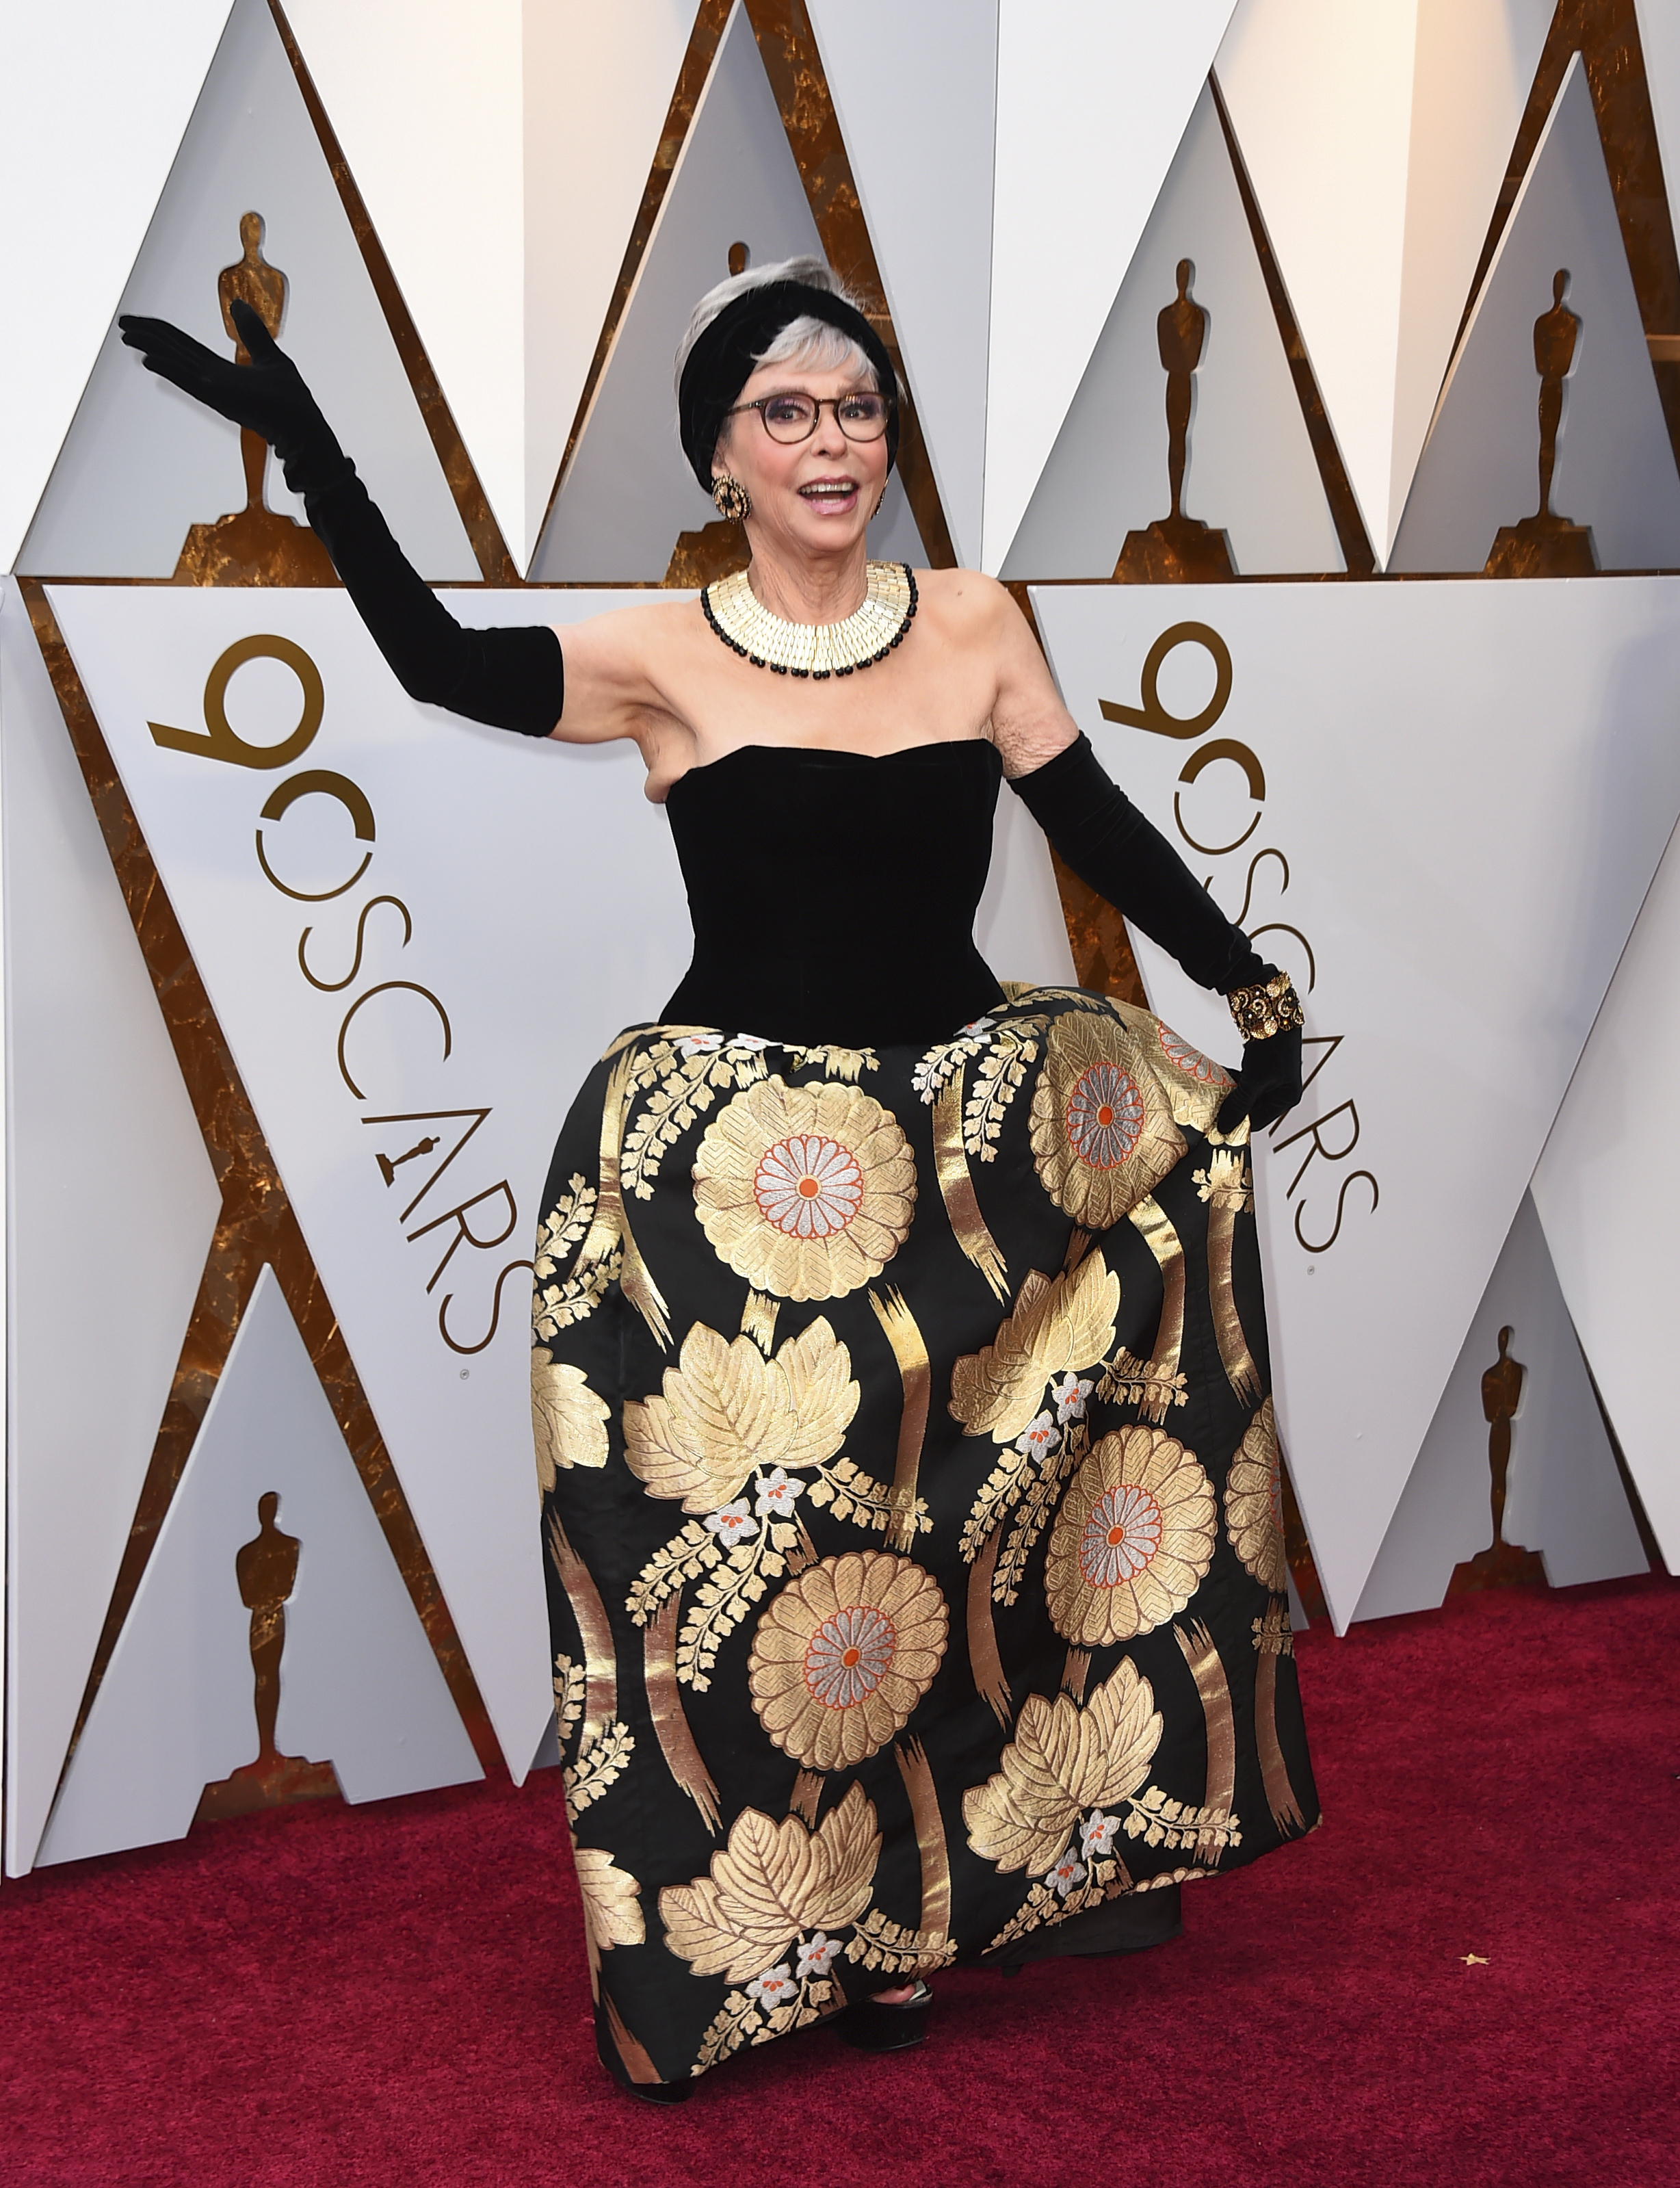 "<div class=""meta image-caption""><div class=""origin-logo origin-image none""><span>none</span></div><span class=""caption-text"">Rita Moreno arrives at the Oscars on Sunday, March 4, 2018, at the Dolby Theatre in Los Angeles. (Jordan Strauss/Invision/AP)</span></div>"